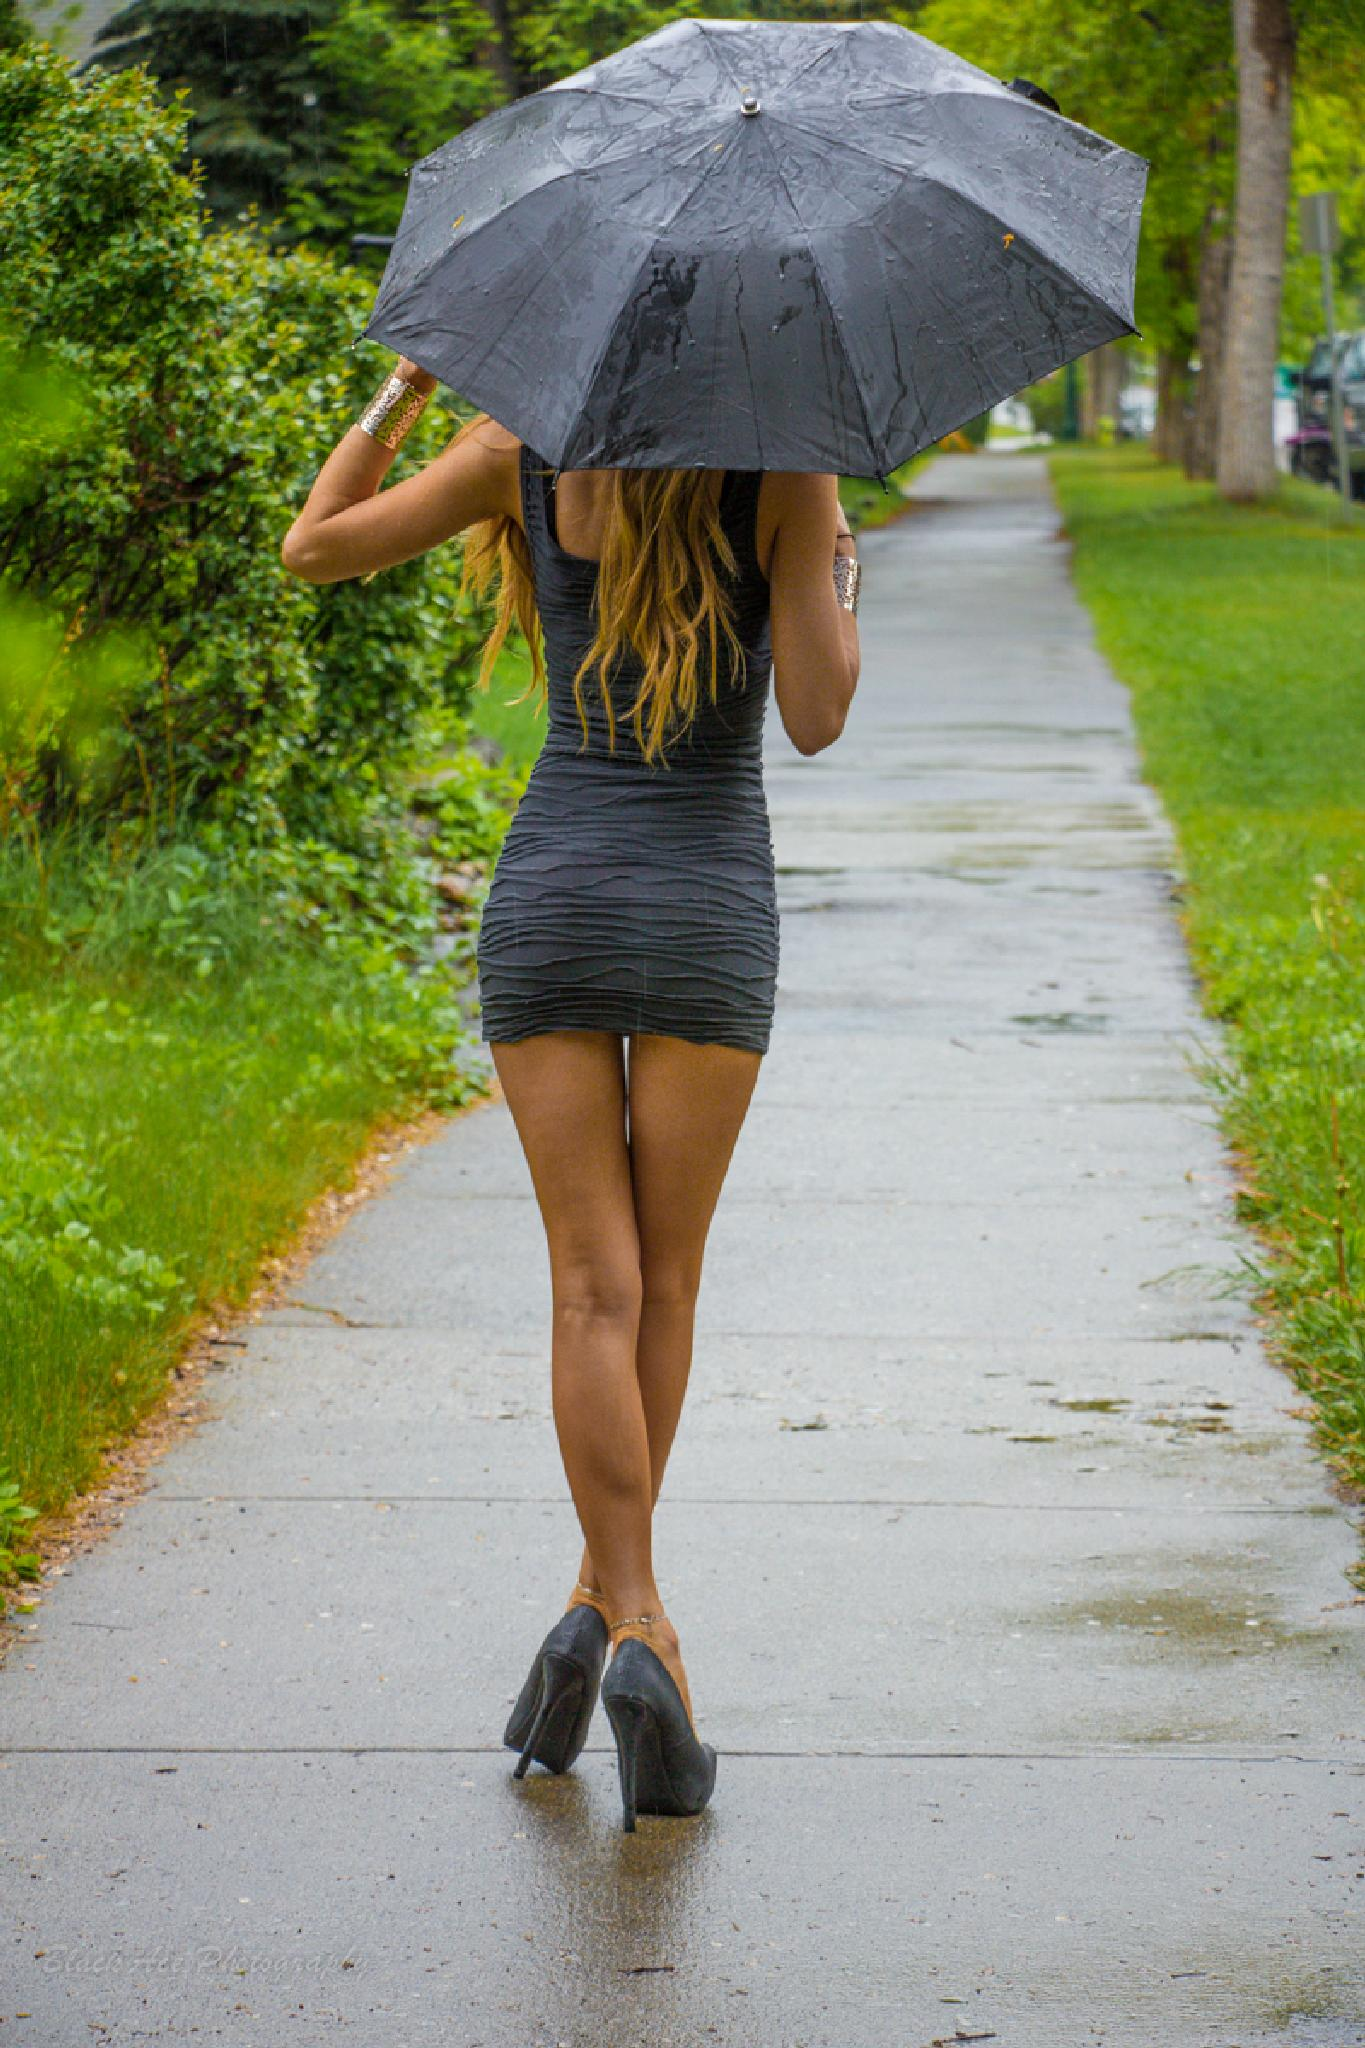 In the Rain by BlackAcePhotography